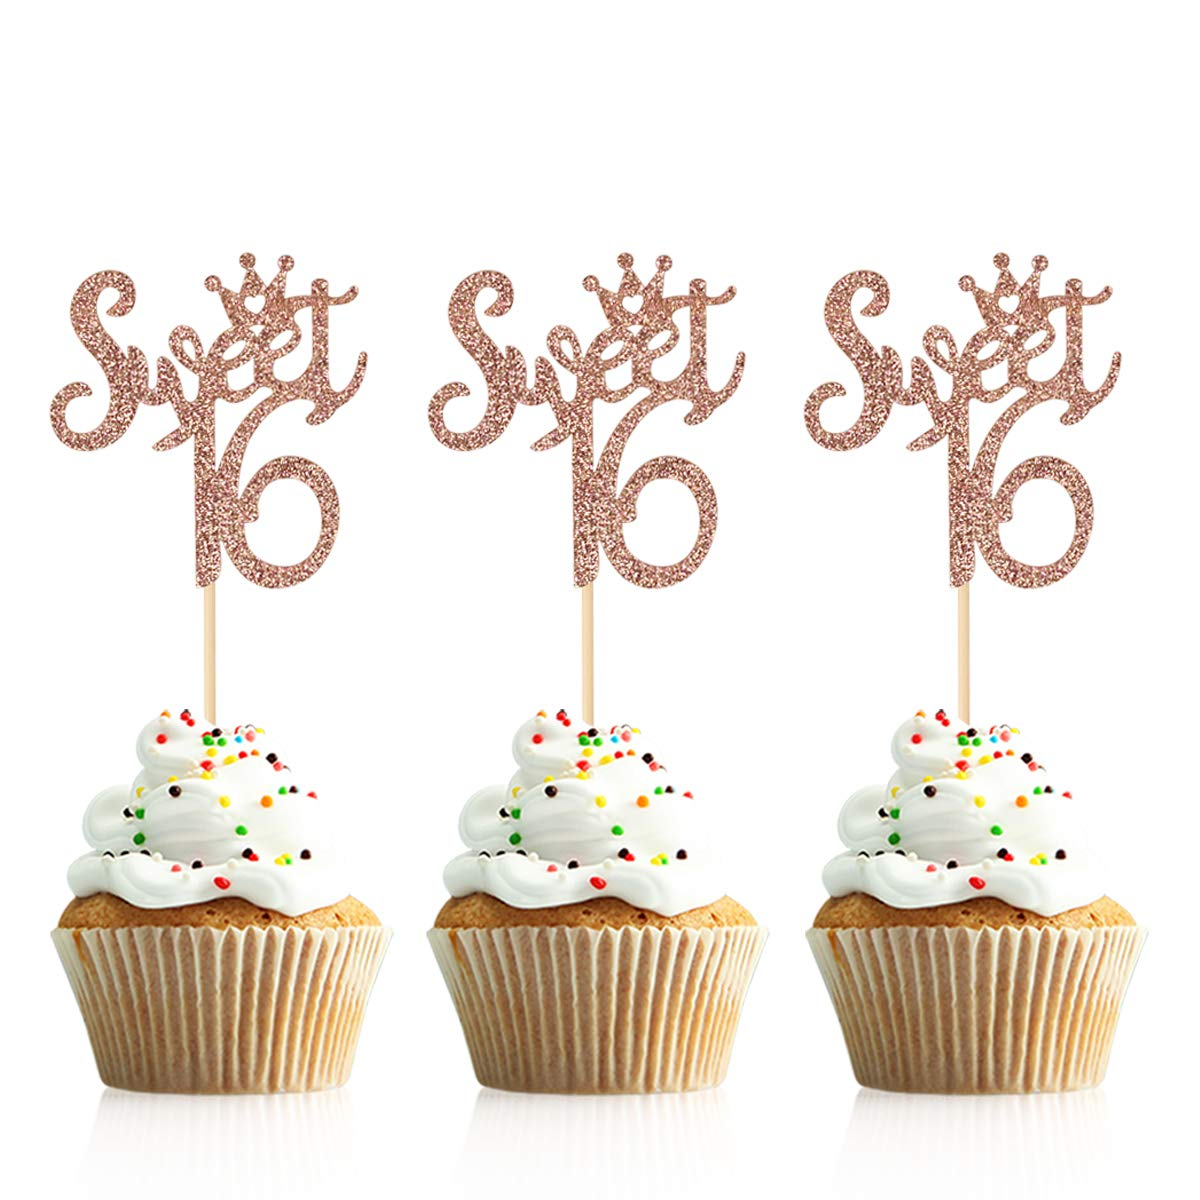 24Pcs Rose Gold Glittery Sweet 16 16 Happy Birthday Cupcake Toppers 16th Birthday Party Decorations,Cheers to 16 Year,Sweet Sixteen,16th Anniversary Party Decorations,16th Birthday Cake Toppers Decor